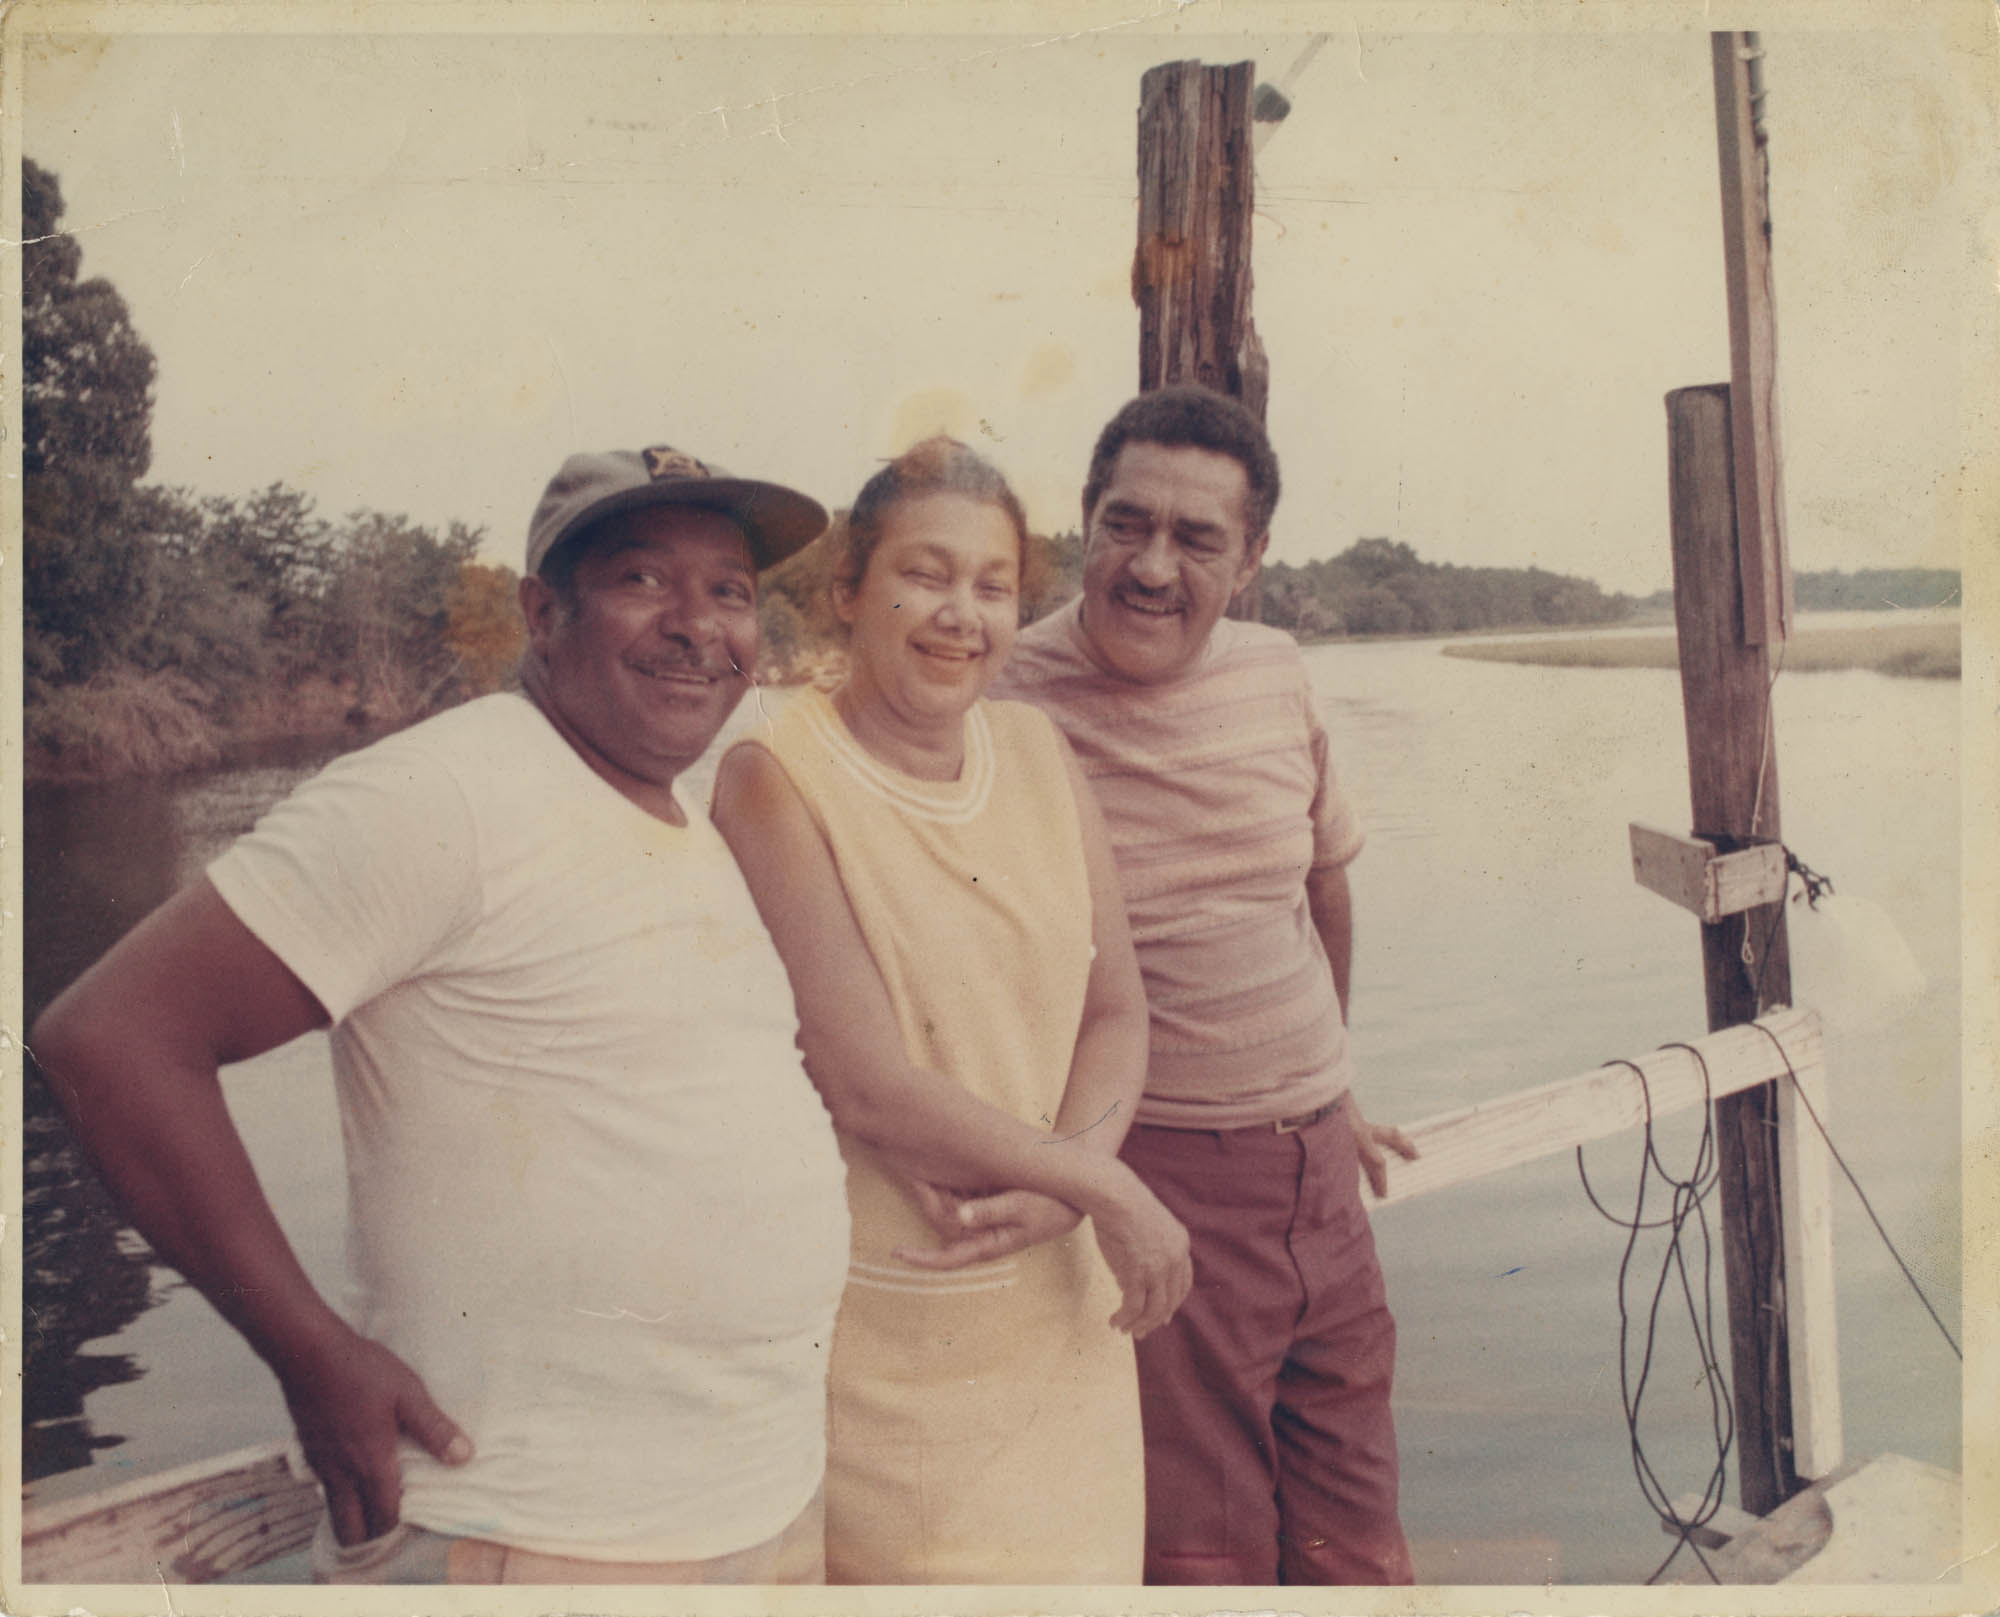 Photograph of J. Arthur Brown, MaeDe Brown, and Unidentified Man